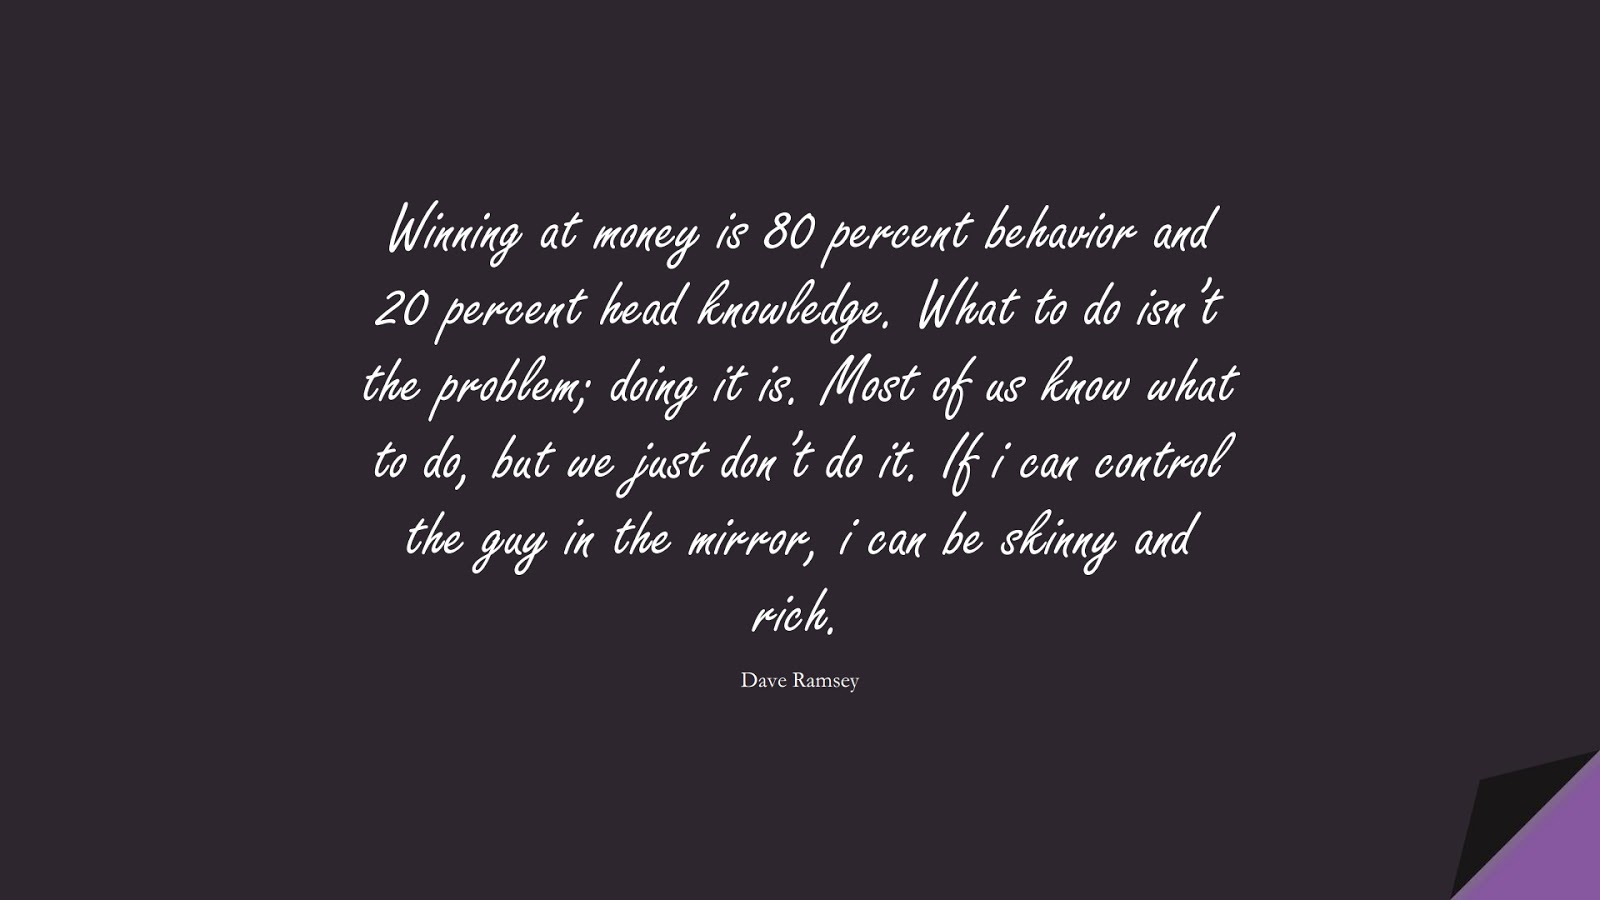 Winning at money is 80 percent behavior and 20 percent head knowledge. What to do isn't the problem; doing it is. Most of us know what to do, but we just don't do it. If i can control the guy in the mirror, i can be skinny and rich. (Dave Ramsey);  #MoneyQuotes